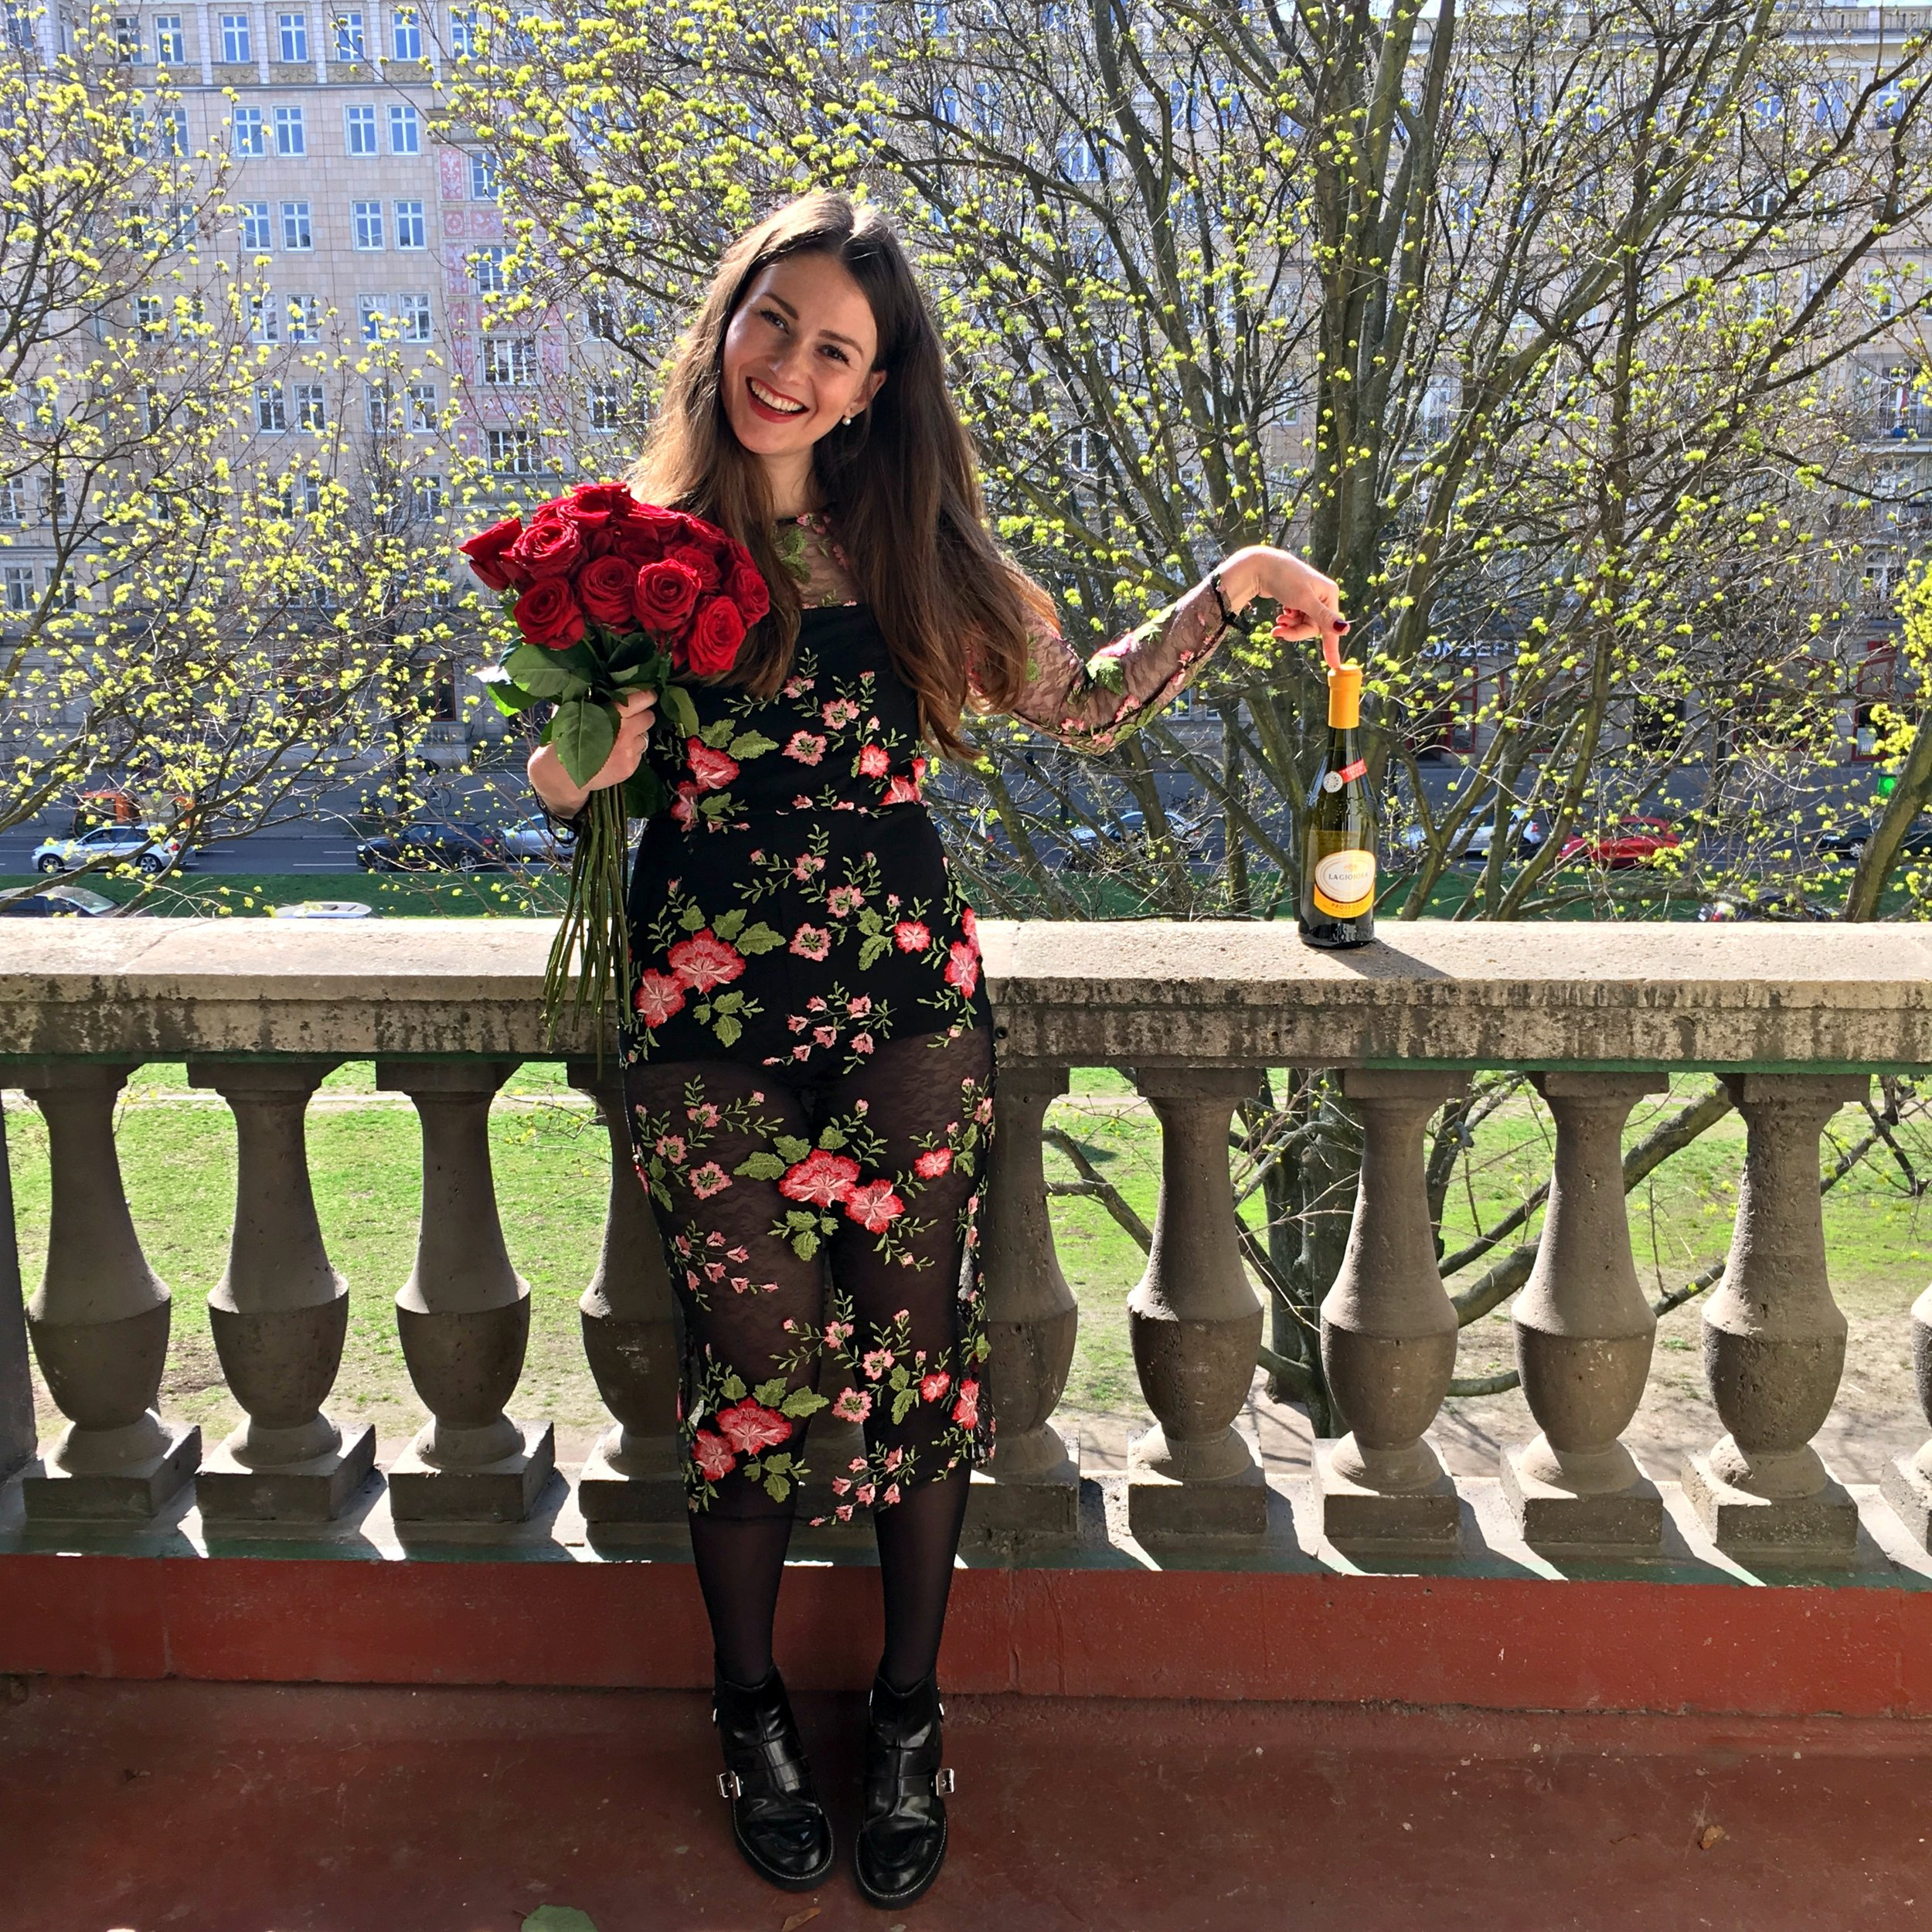 HAPPY BIRTHDAY TO ME! Discover my Birthday look in this stunning floral dress...